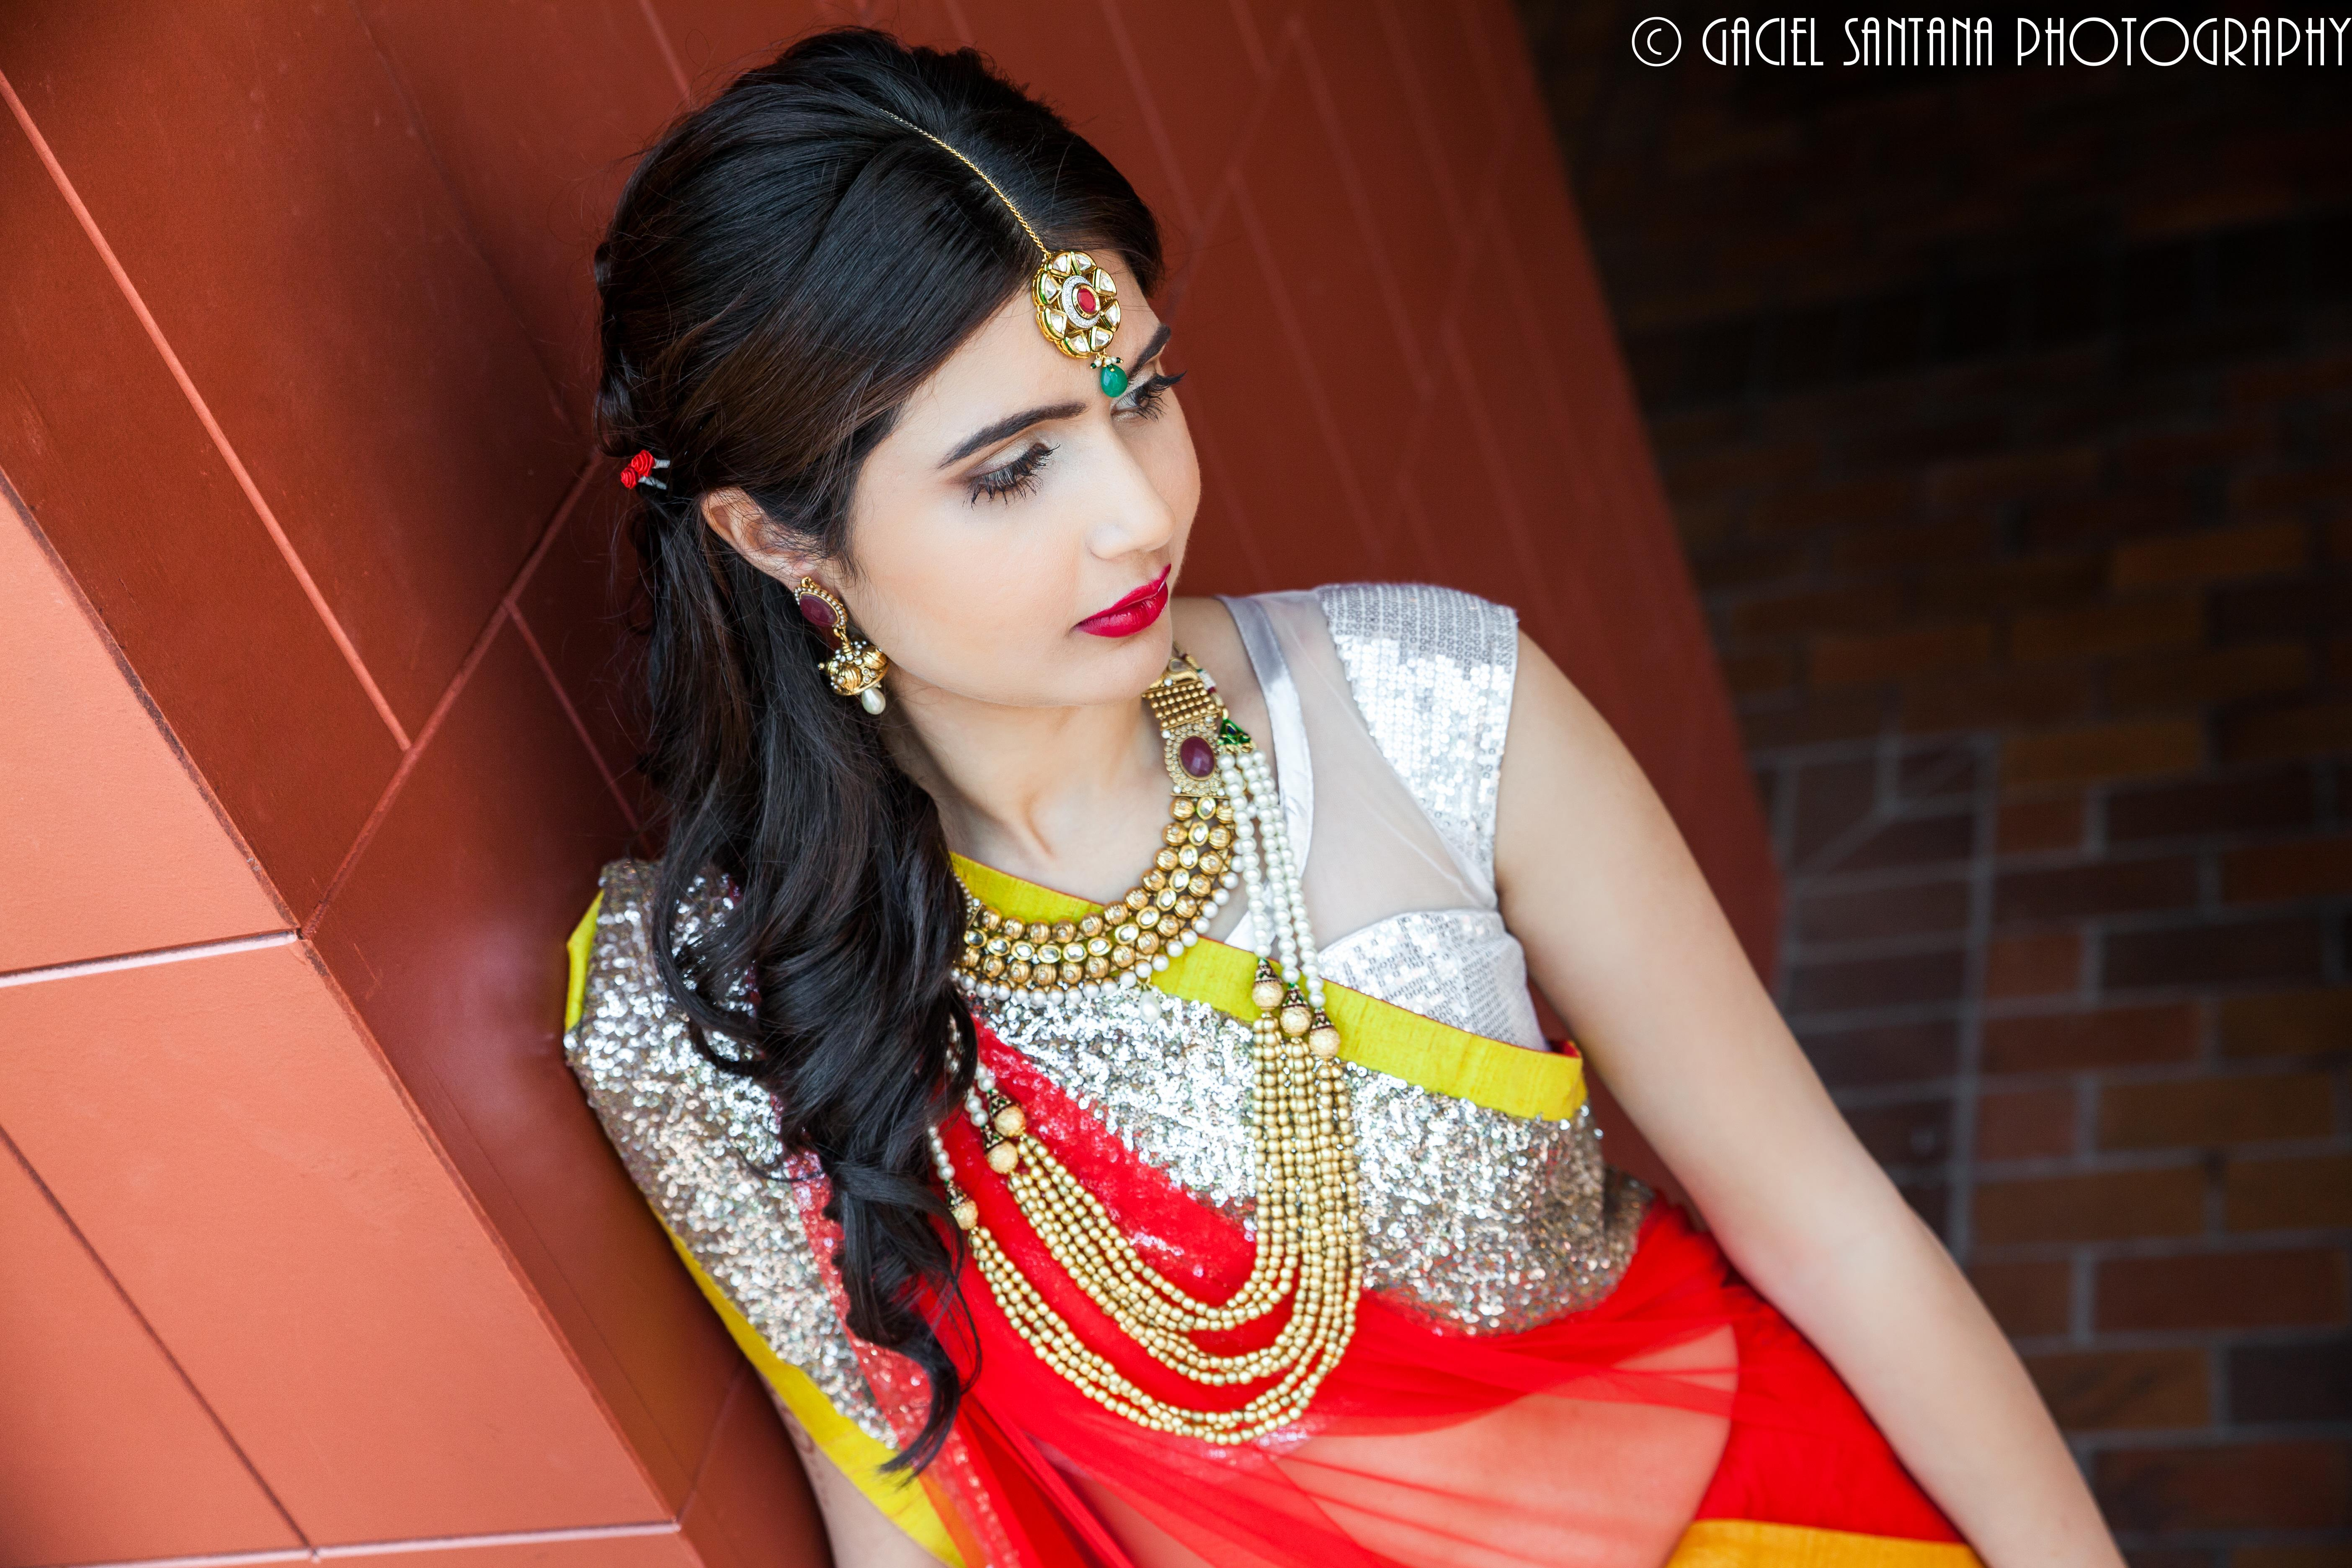 Dazzling Jewelry Fashion Shoot from Featured Vendor Belsi